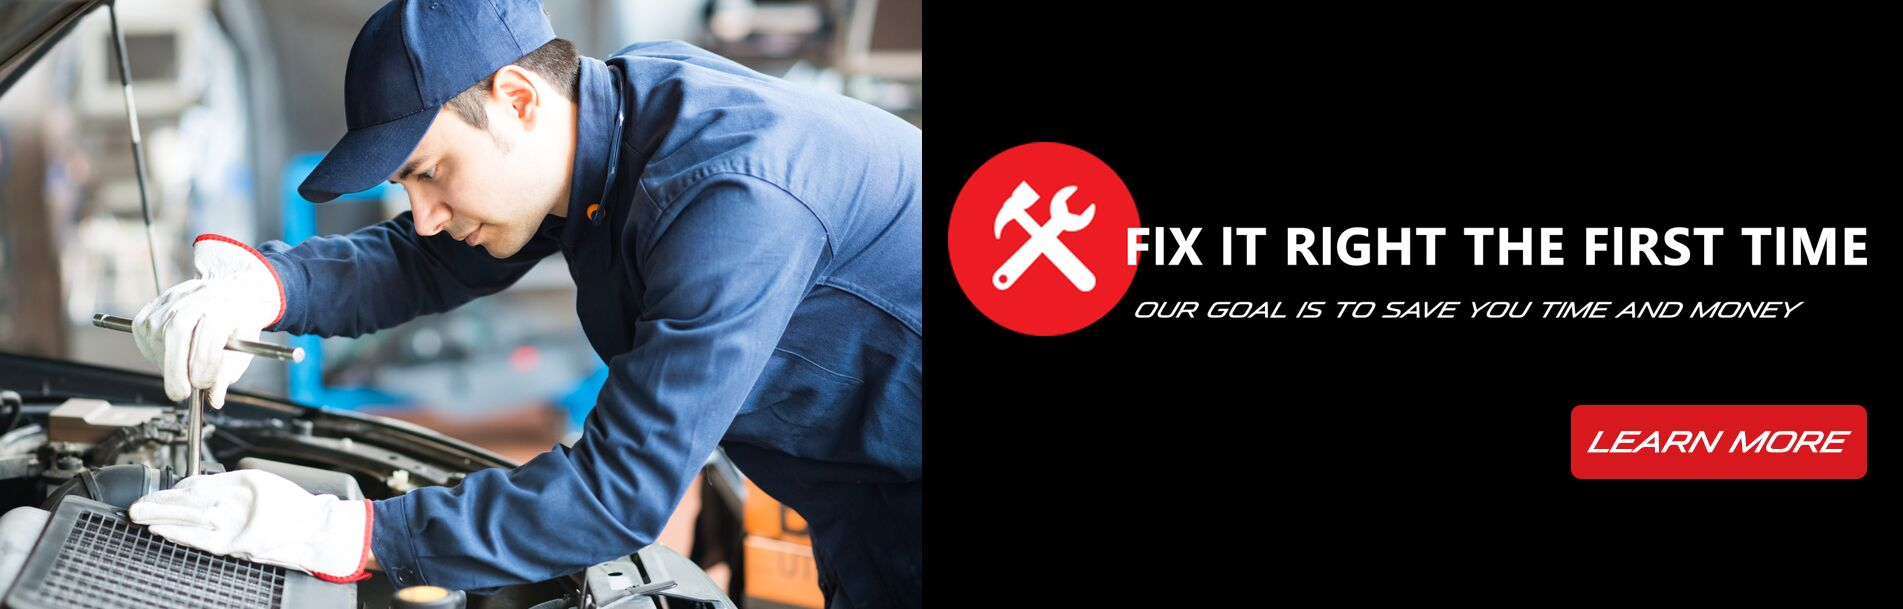 Rochester Mazda Fix it Right the First Time Guarantee